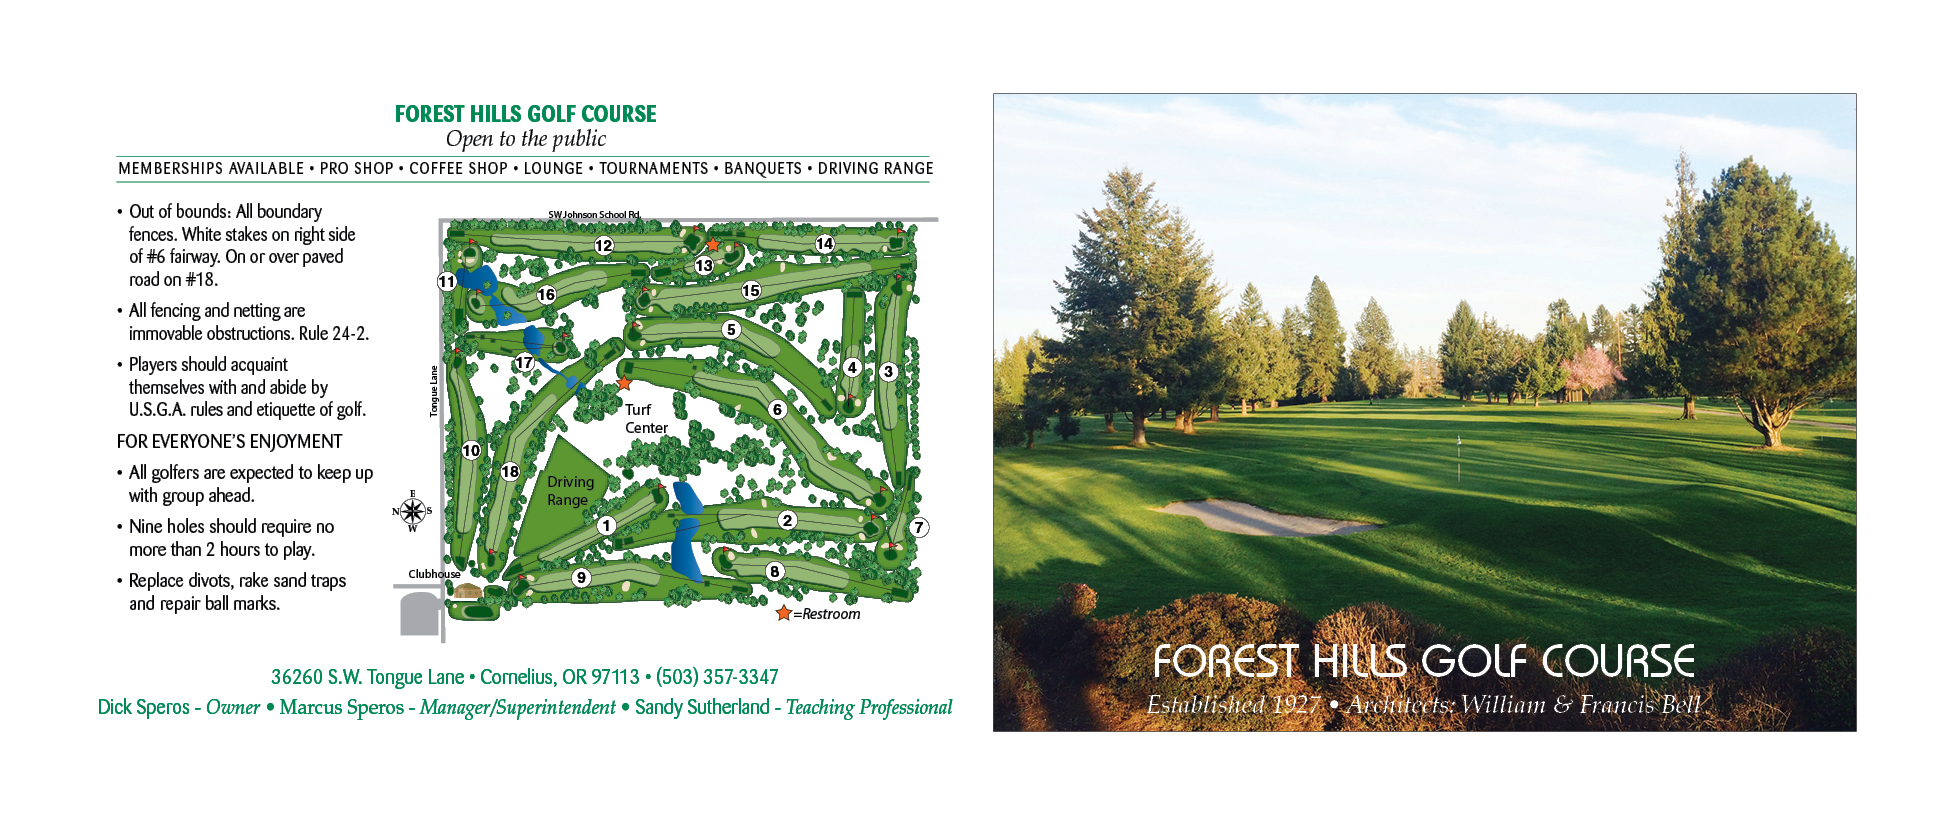 forest hills GC OR 8.302